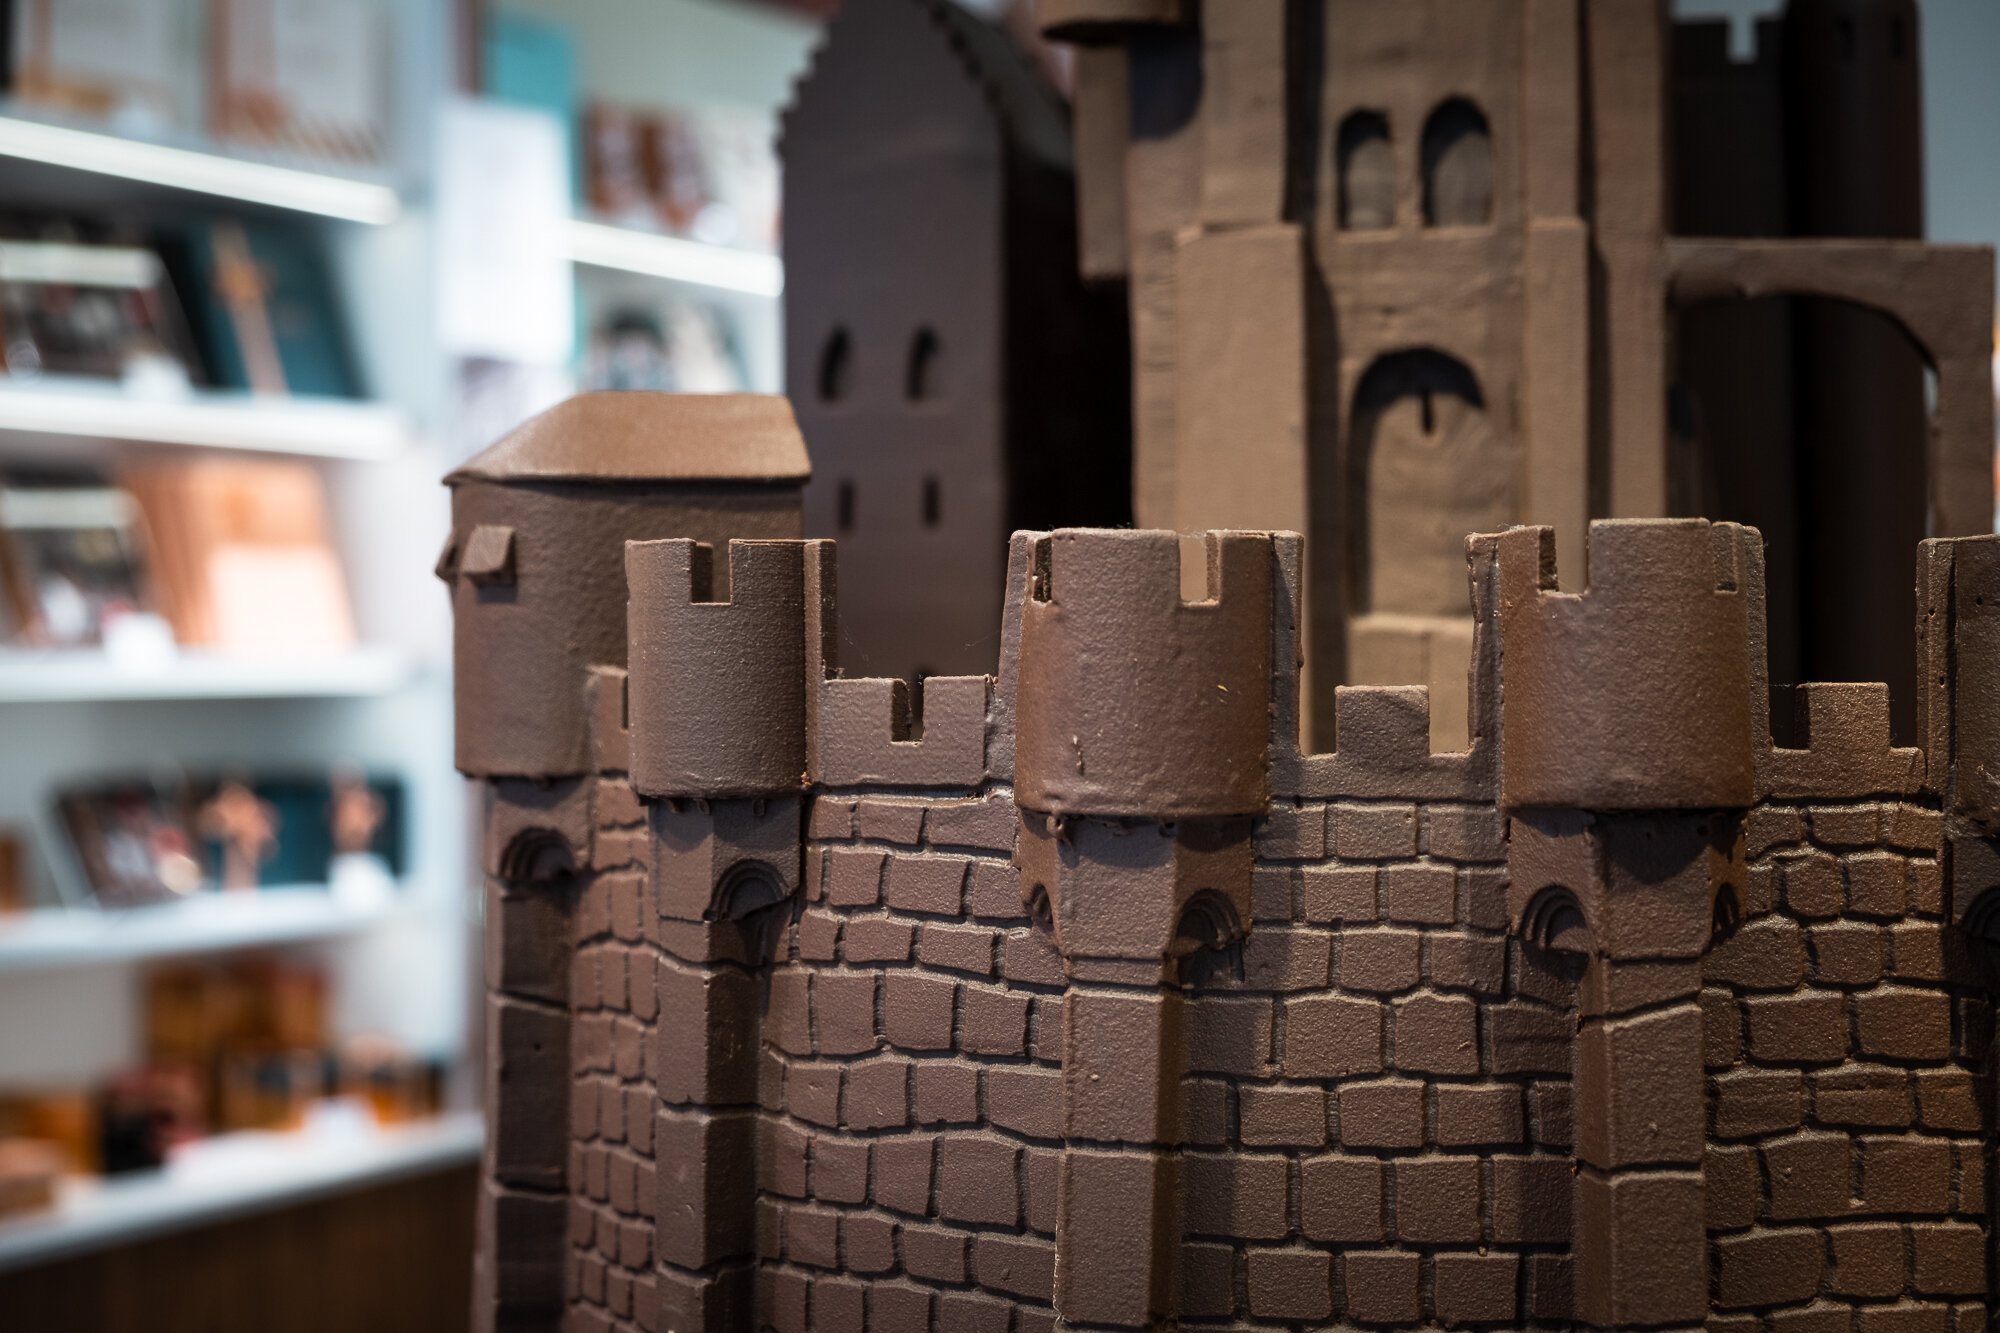 A castle made of chocolate in one of the many chocolate shops in Ghent | Fujifilm XT-30 | XF18-55mm | 33mm | 1/150 Second | f/3.6 | ISO160